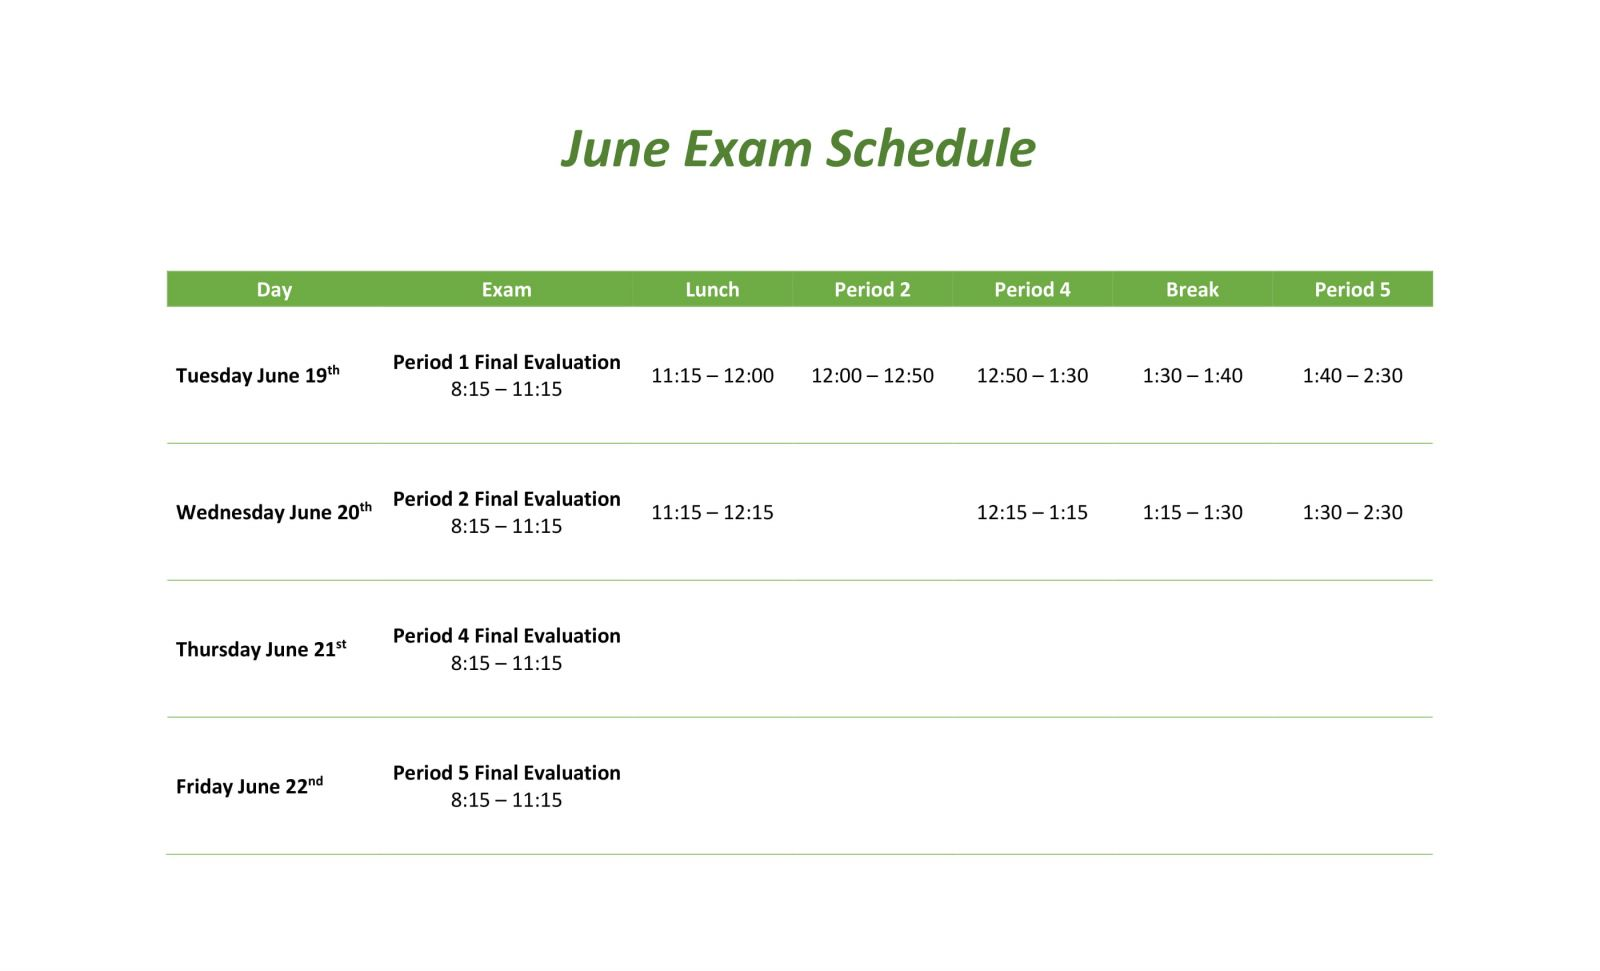 June Exam Schedule